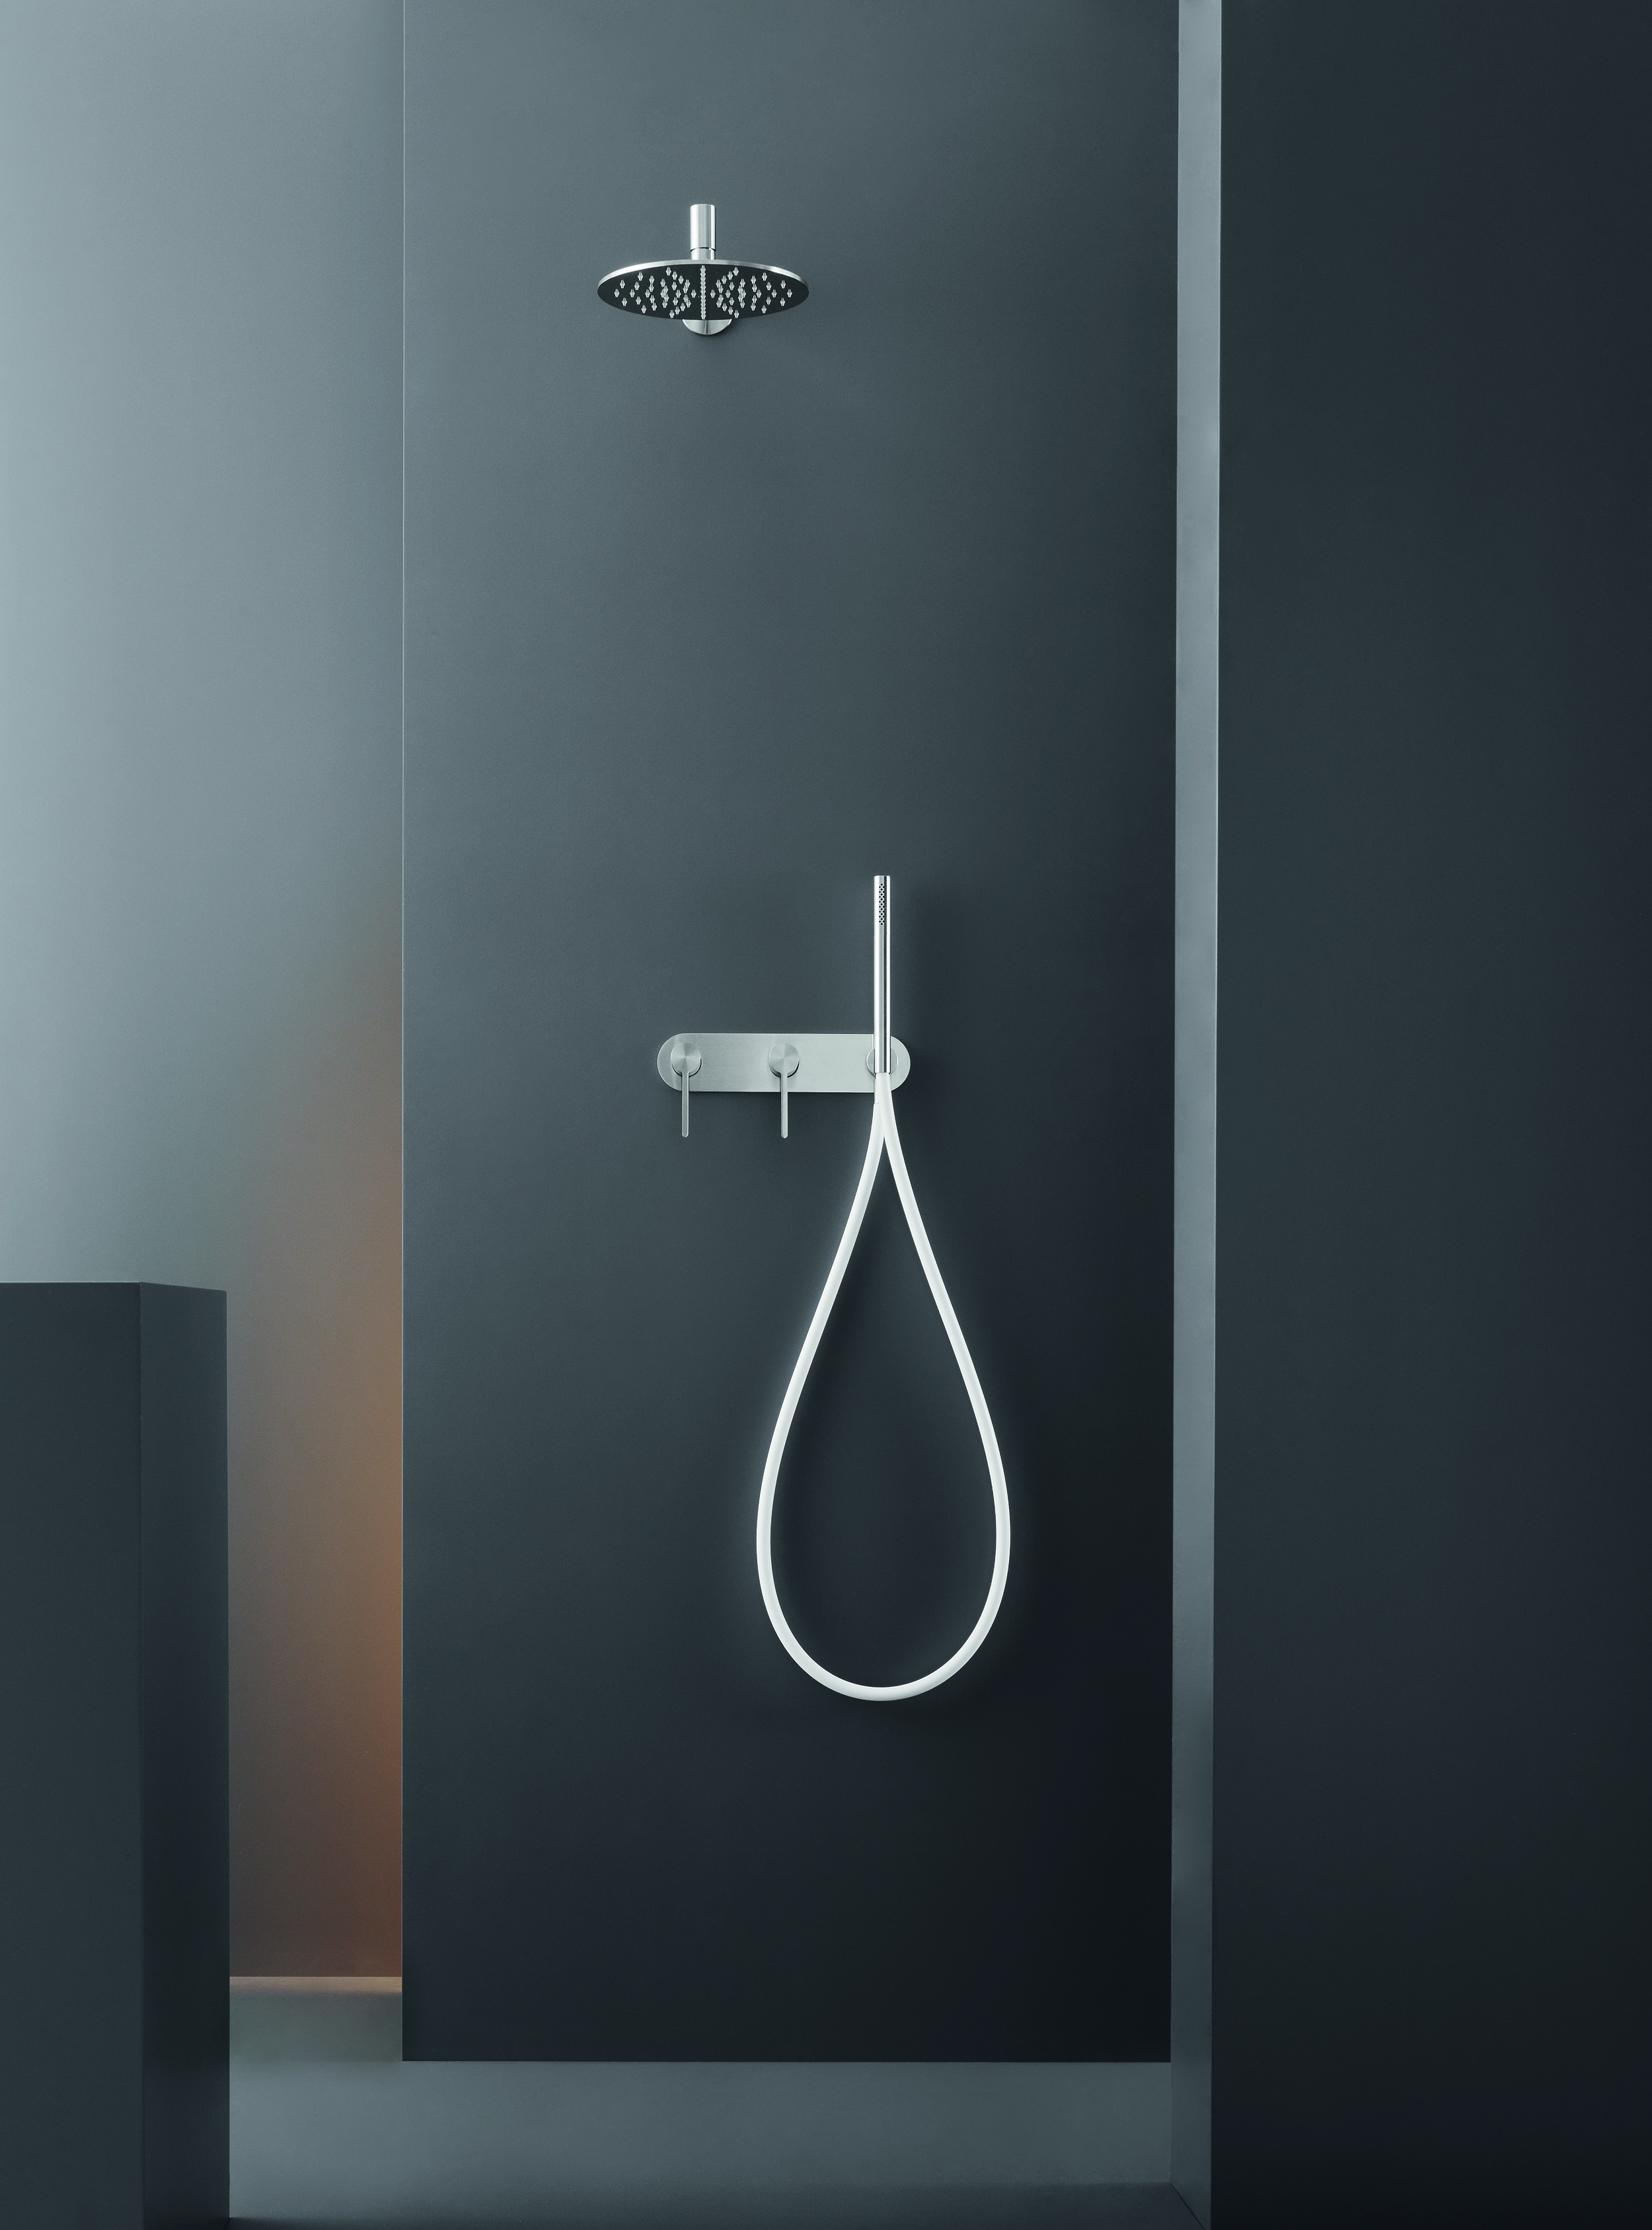 Contemporary Innovo-Free Wall Mount Shower Set